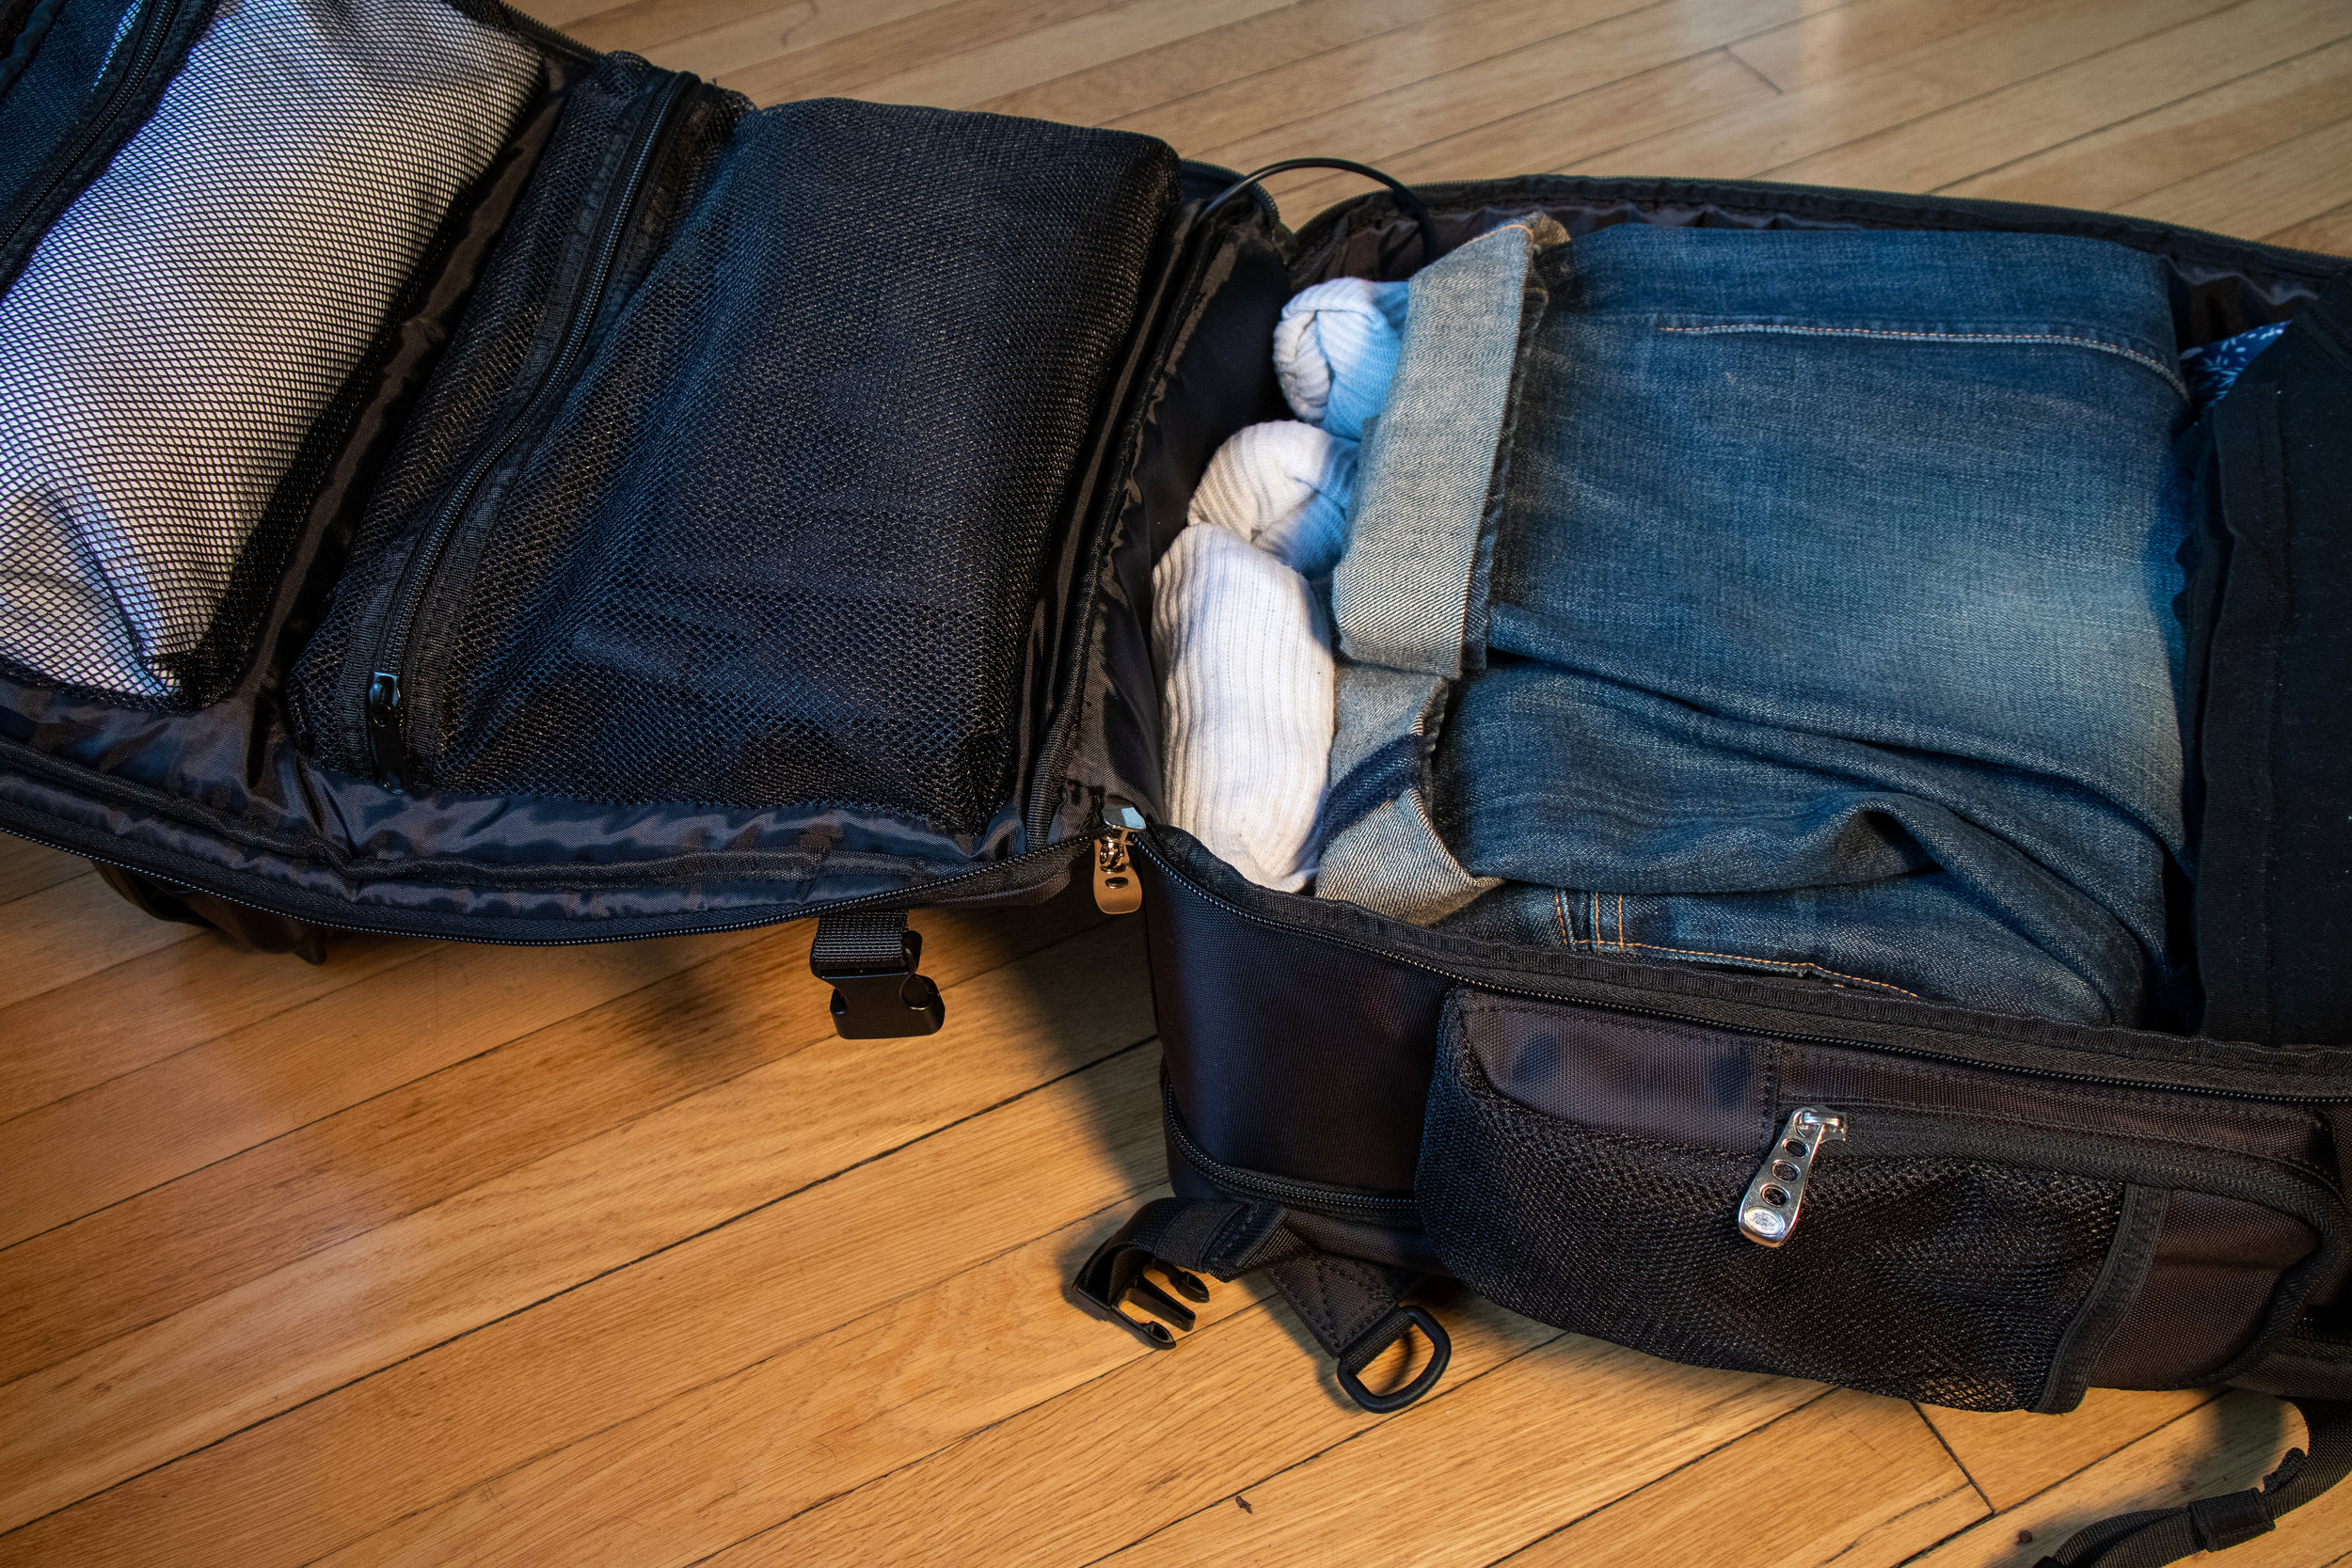 Easy Clam-Shell Compartments - Clam Shell design provides easy packing and are paired with durable, reliable YKK Zippers